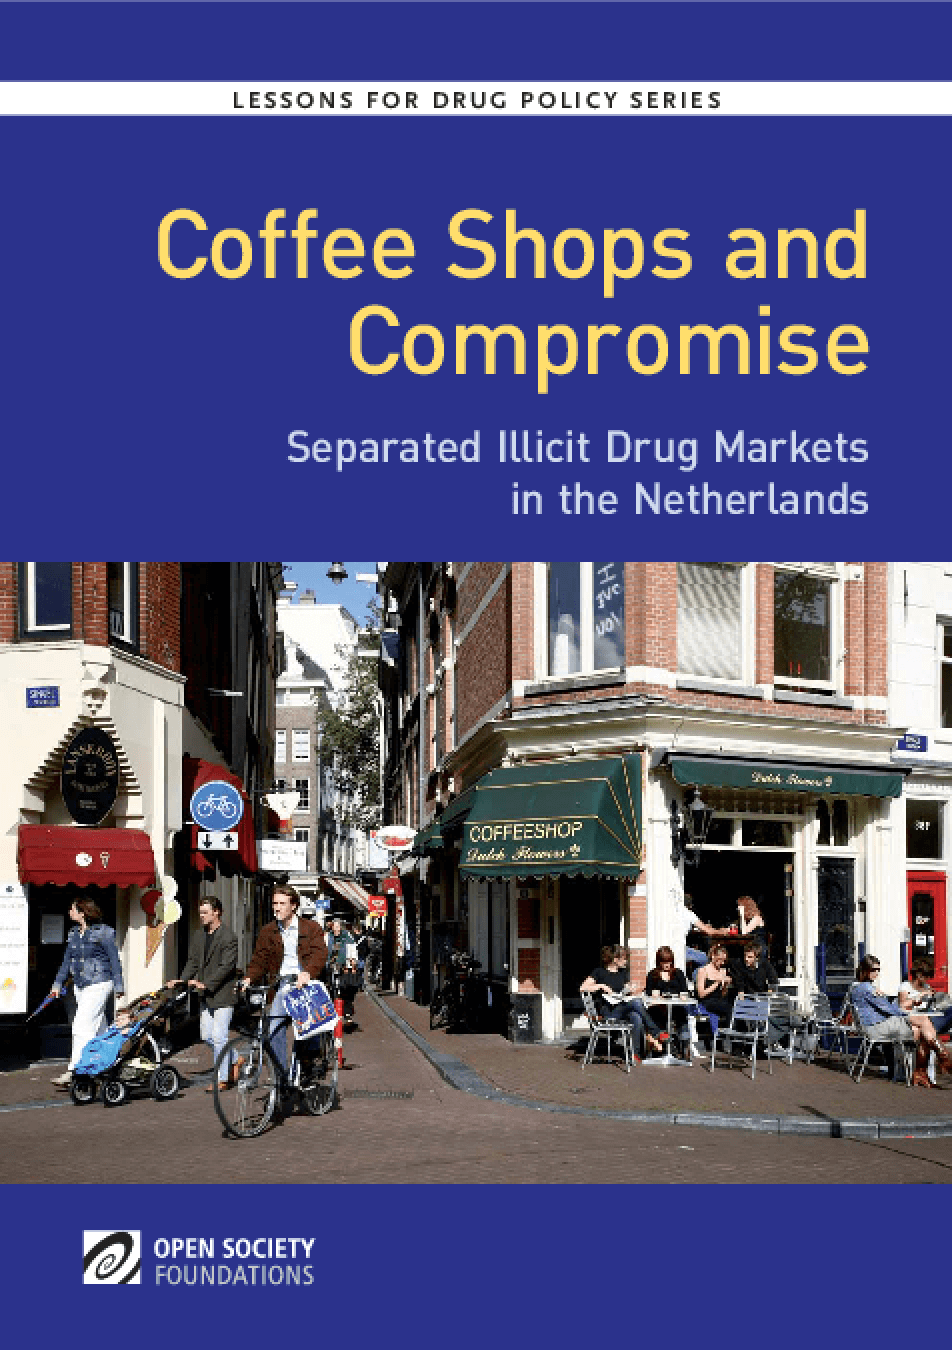 Coffee Shops and Compromise: Separated Illicit Drug Markets in the Netherlands